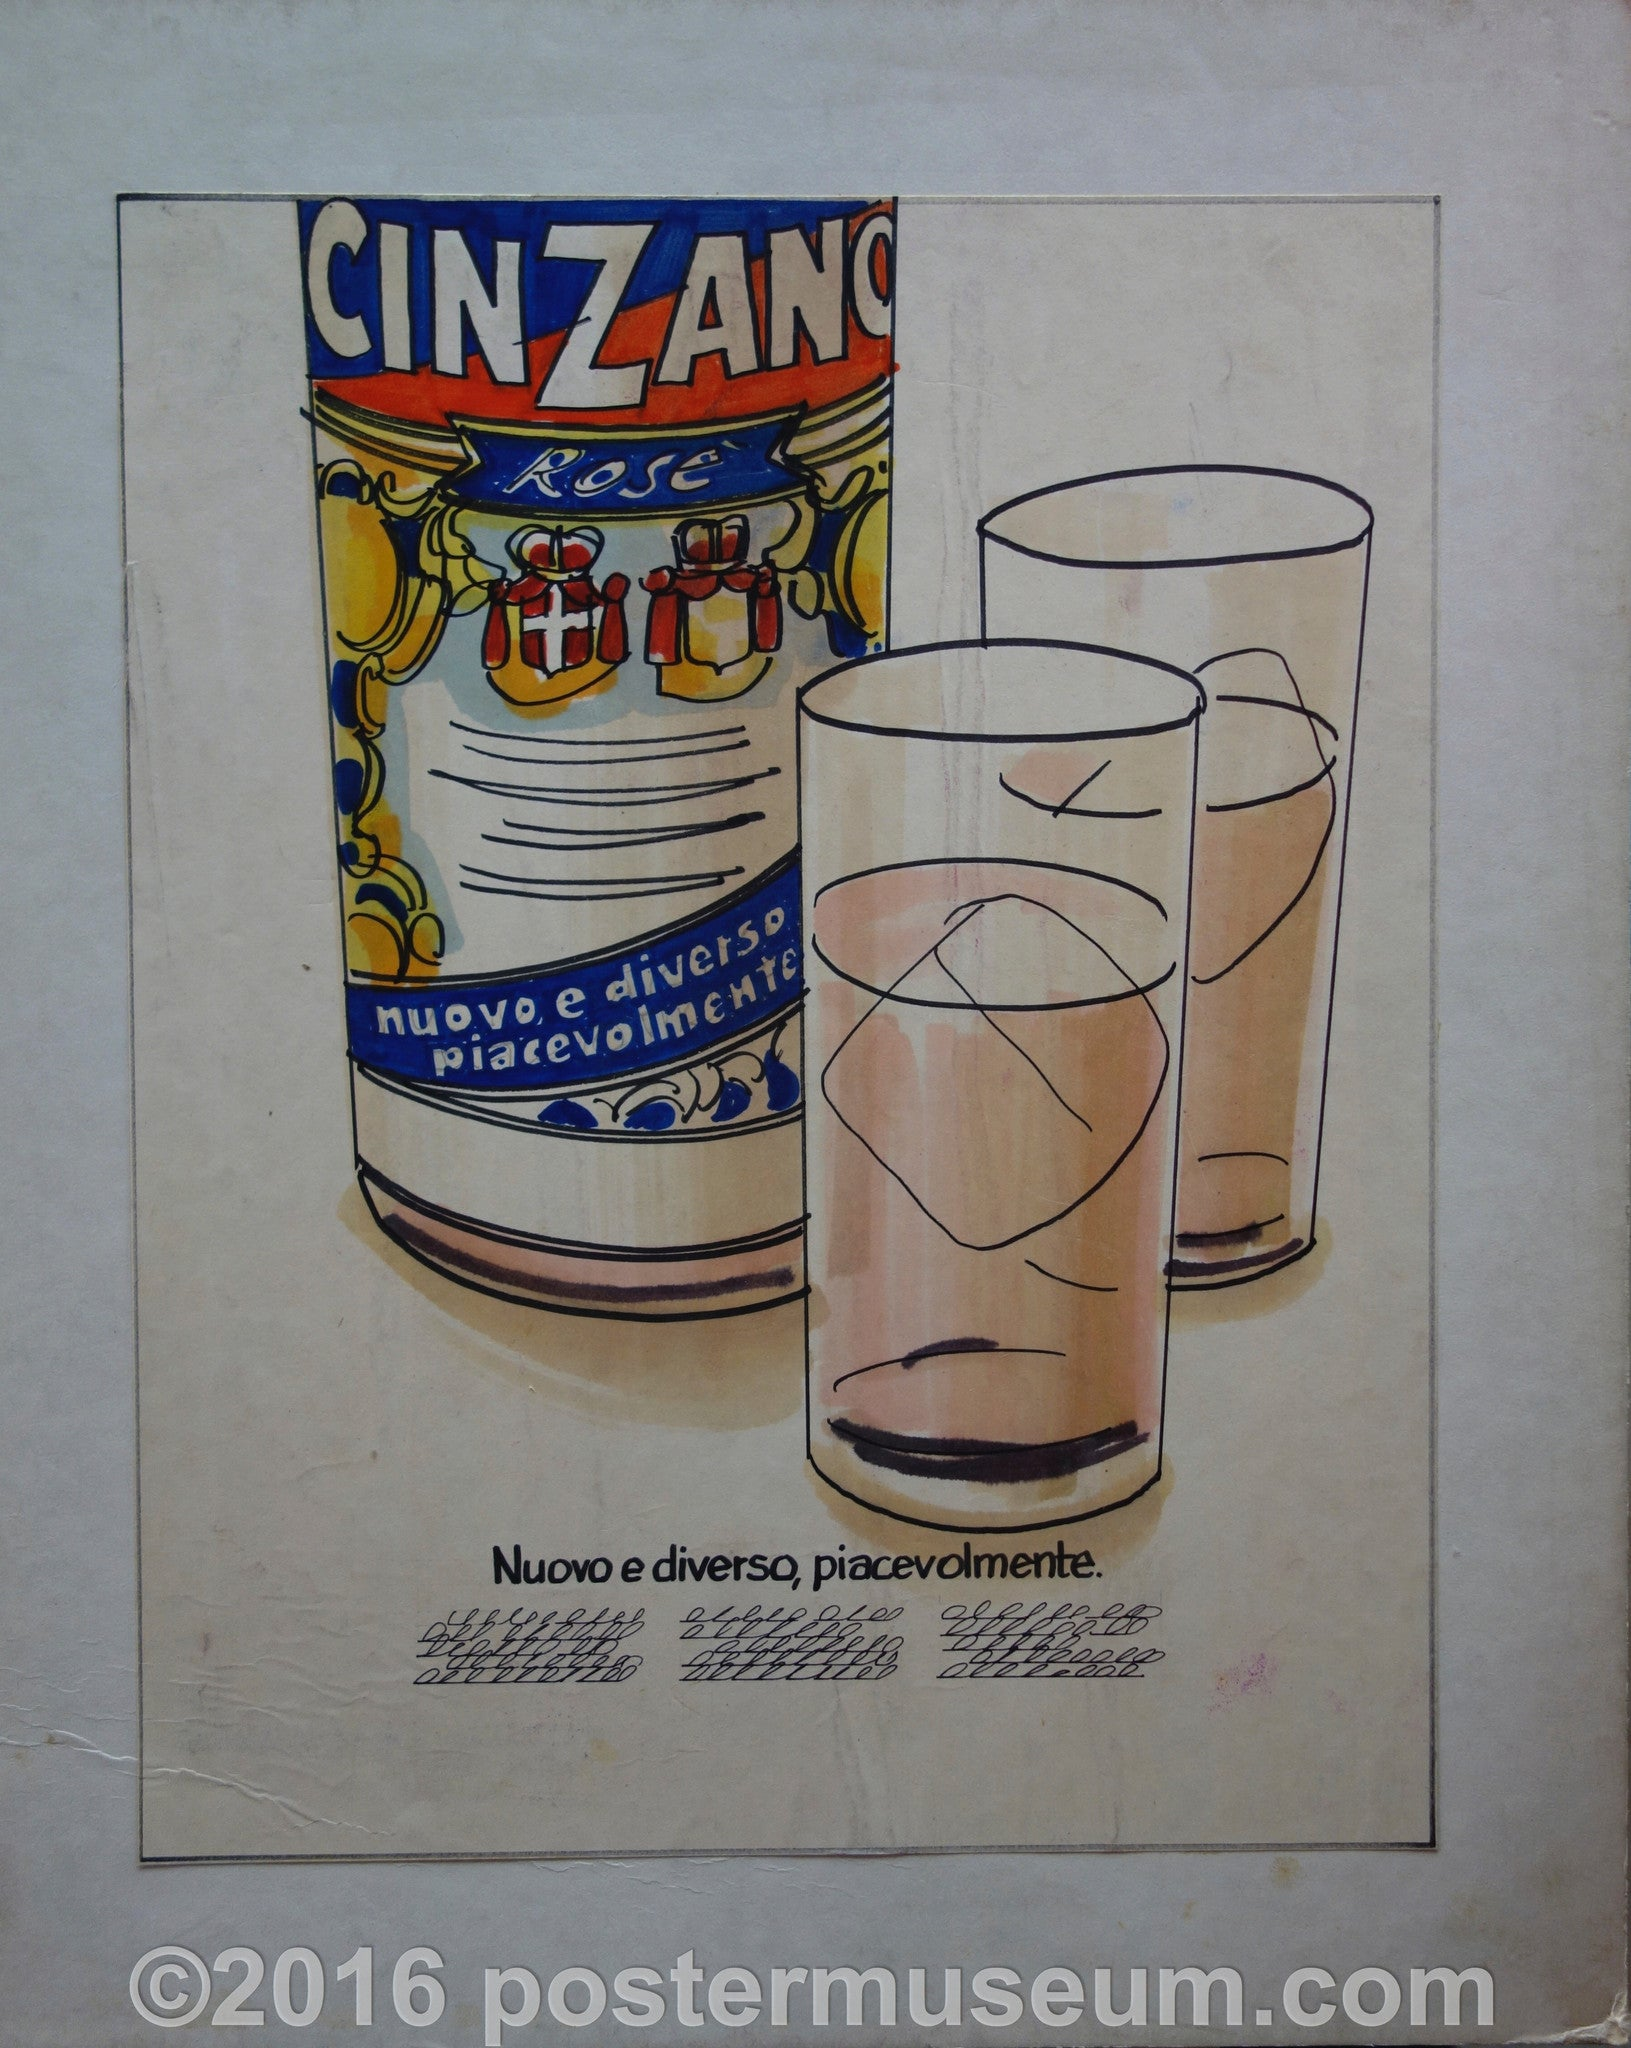 Cinzano (Bottle with Glasses)